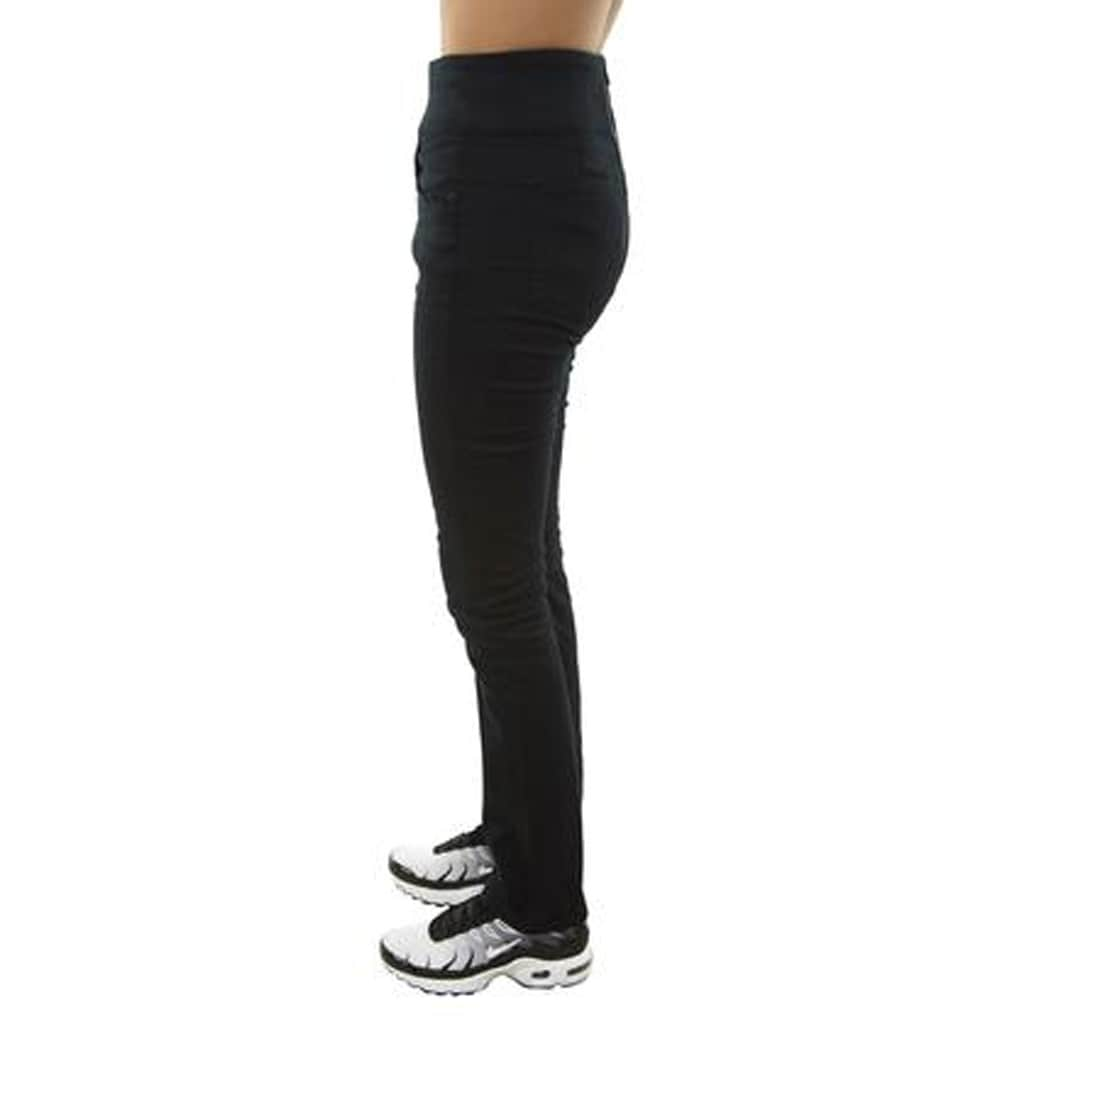 0967ad36210d3f Shop SPANX The Signature Straight High Rise Side Zip Straight Leg Jeans,  Very Black, 27 - Free Shipping Today - Overstock - 28362209